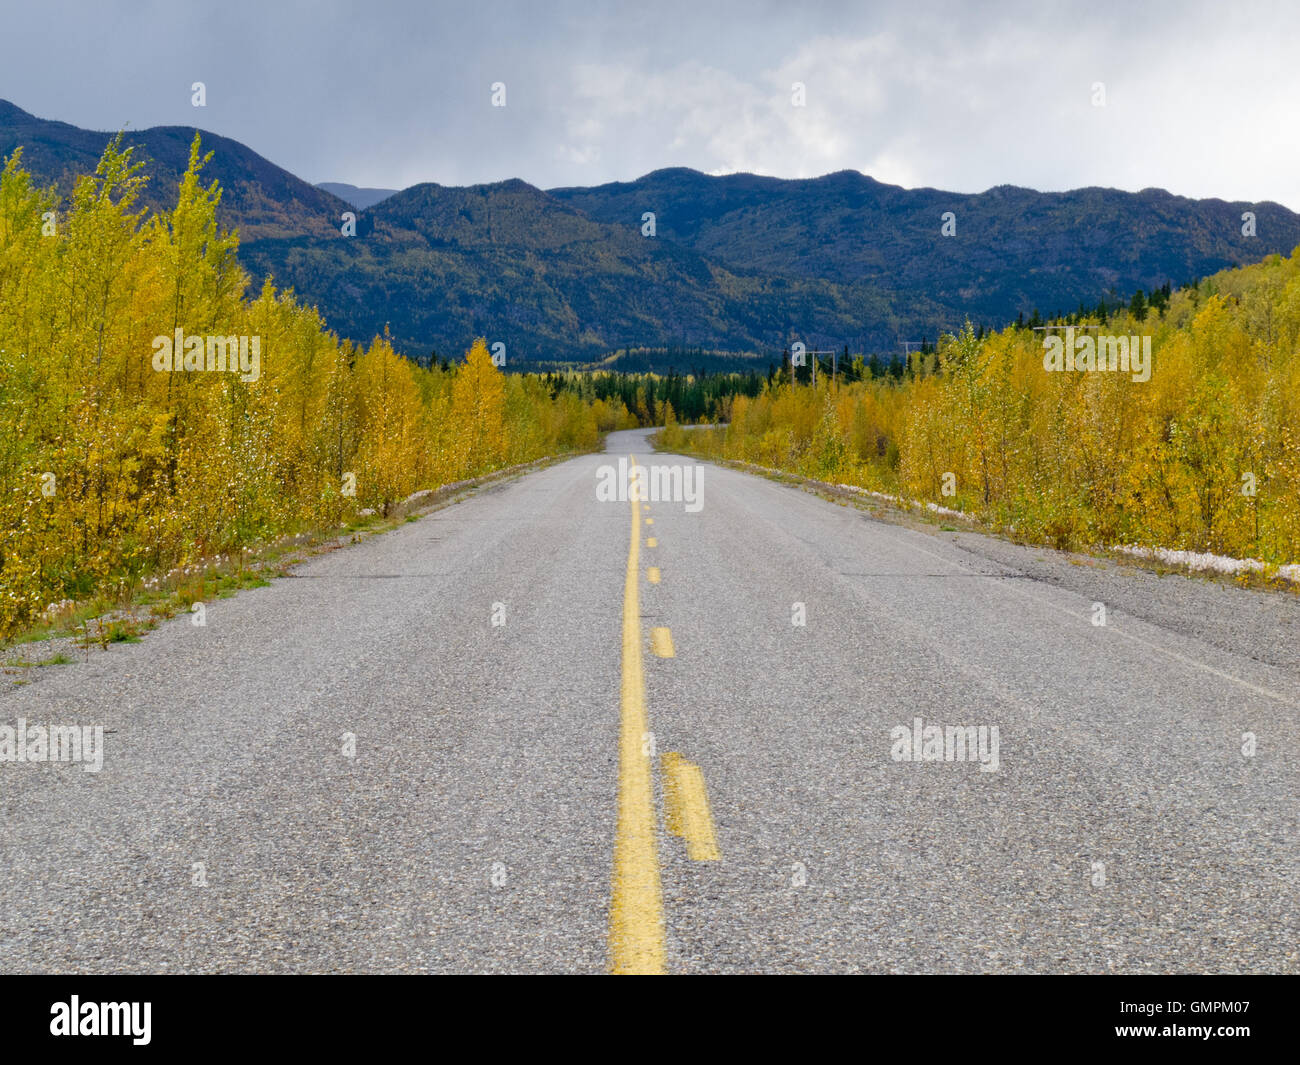 Fall at Robert Campbell Hwy Yukon Territory Canada - Stock Image